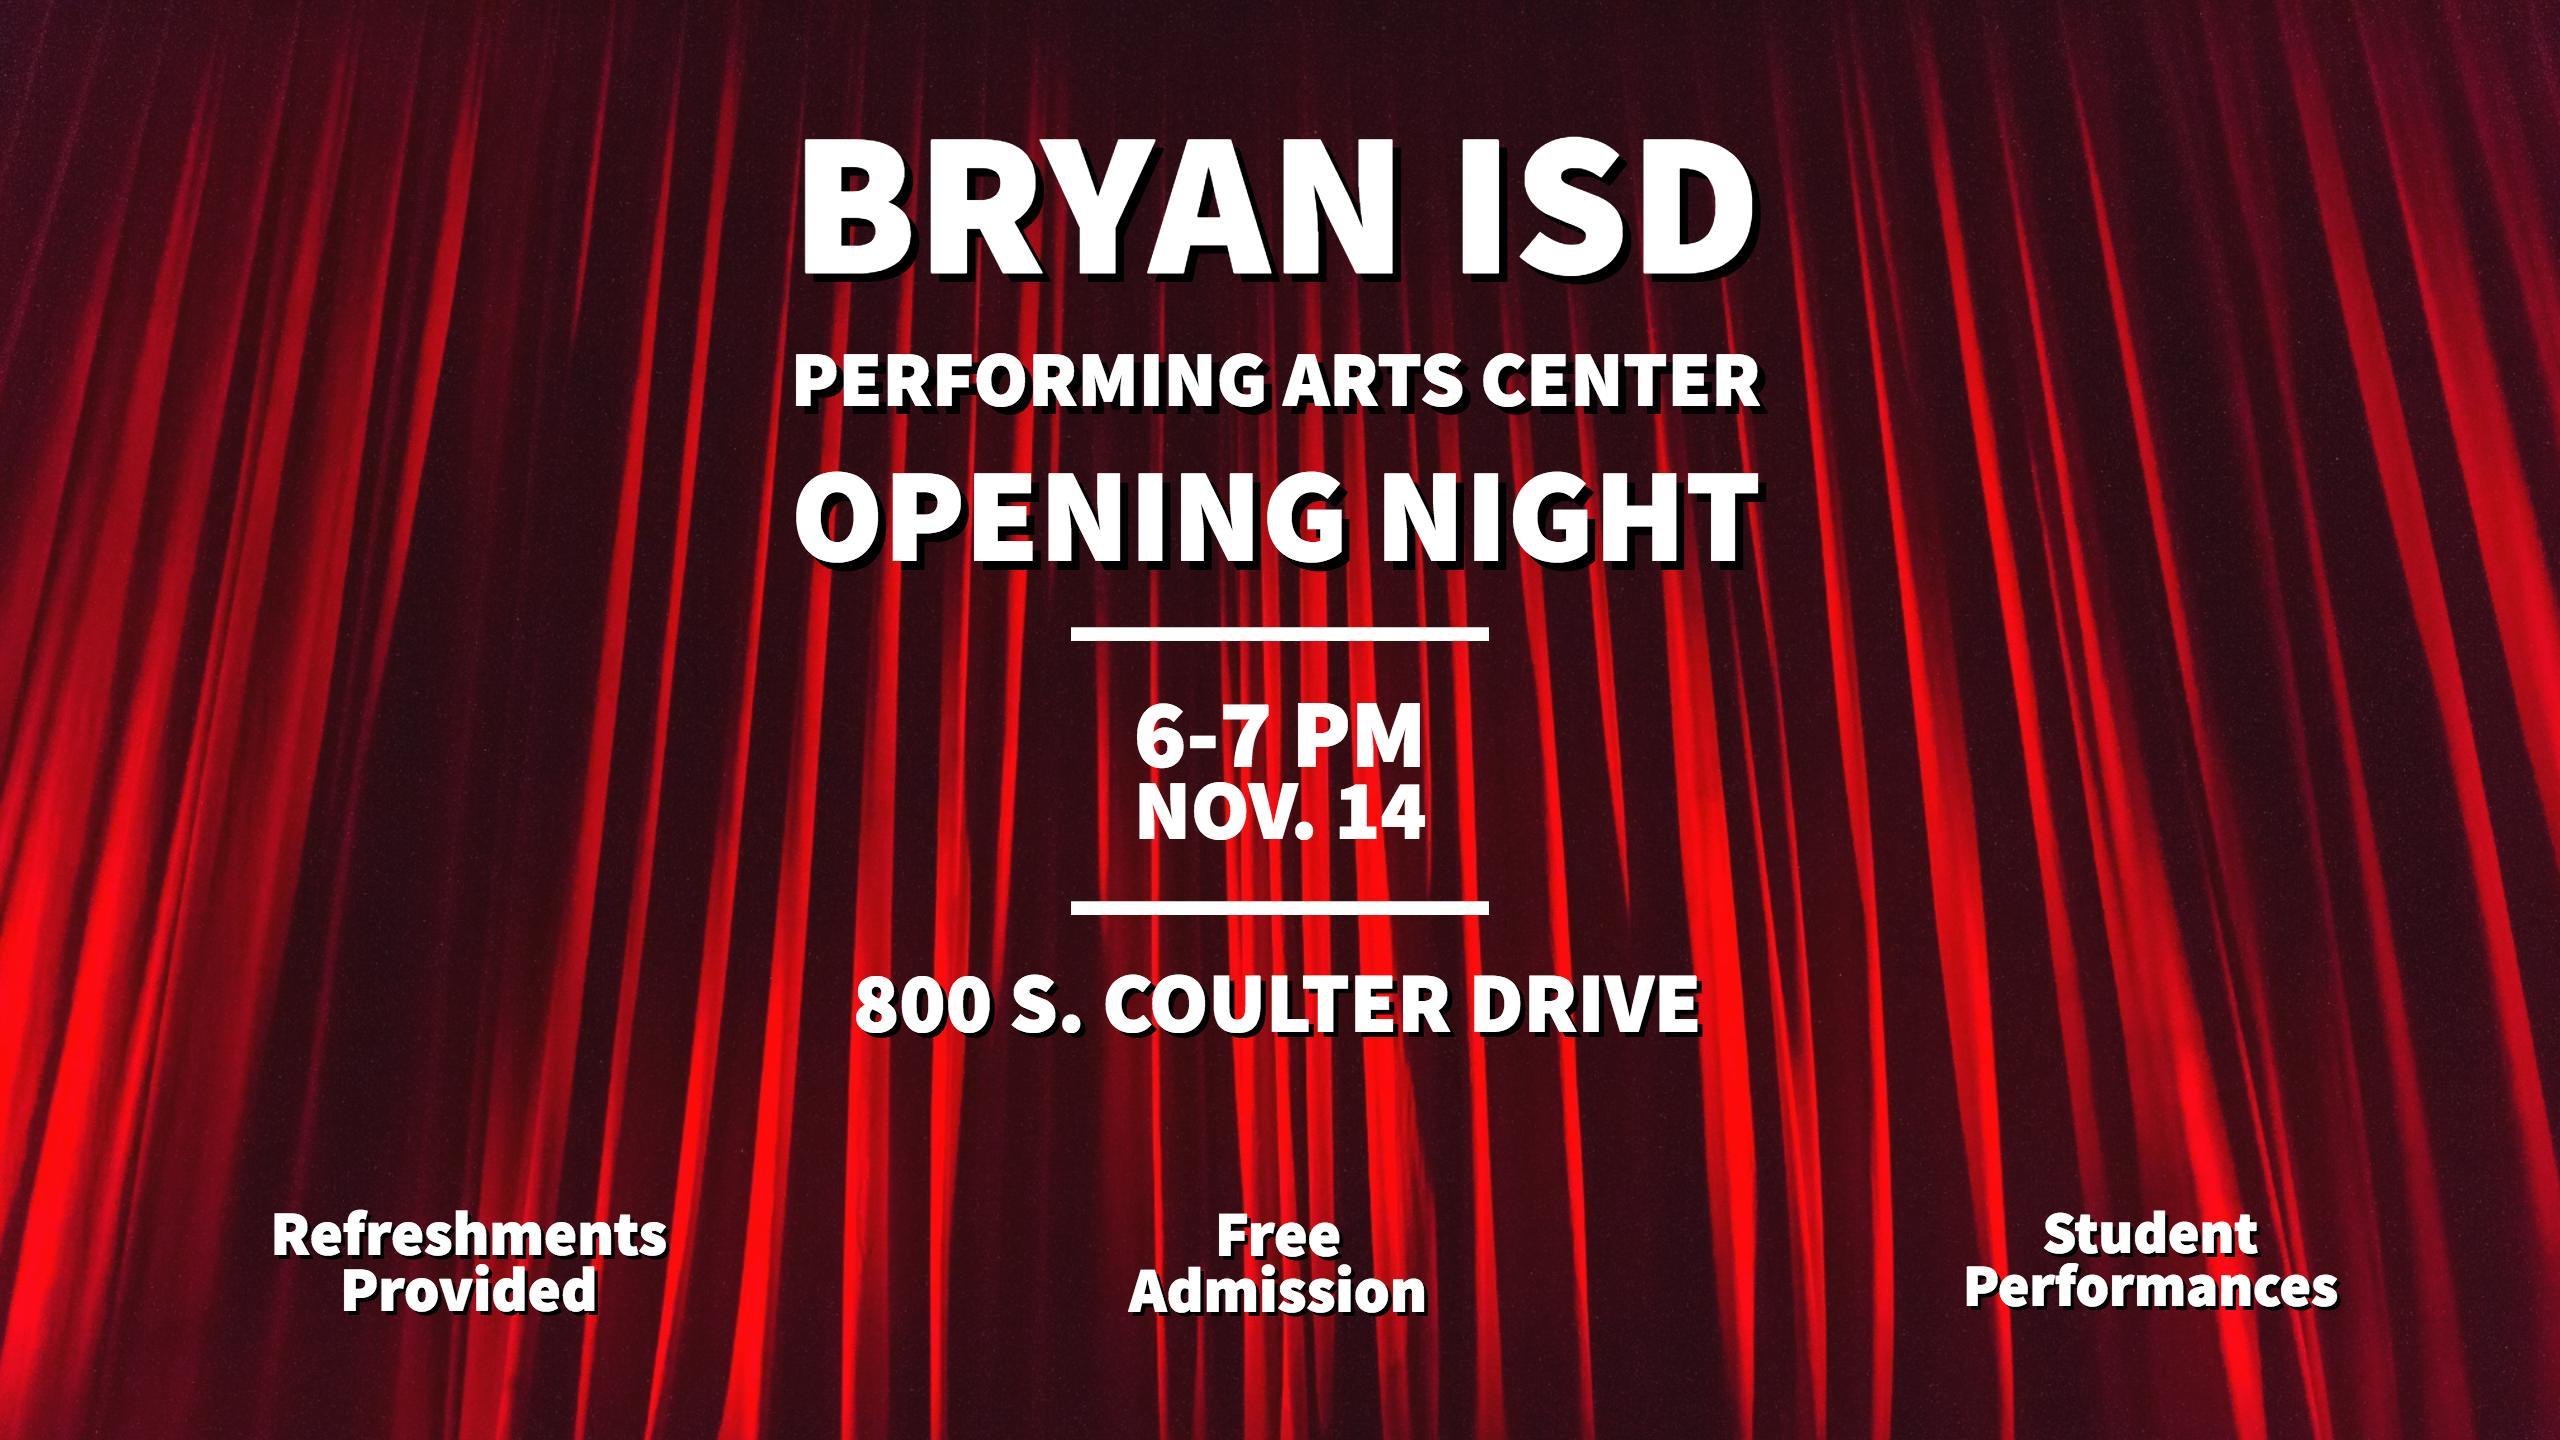 z Bryan ISD Performing Arts Center.PAC Opening.Nov.15 (1)